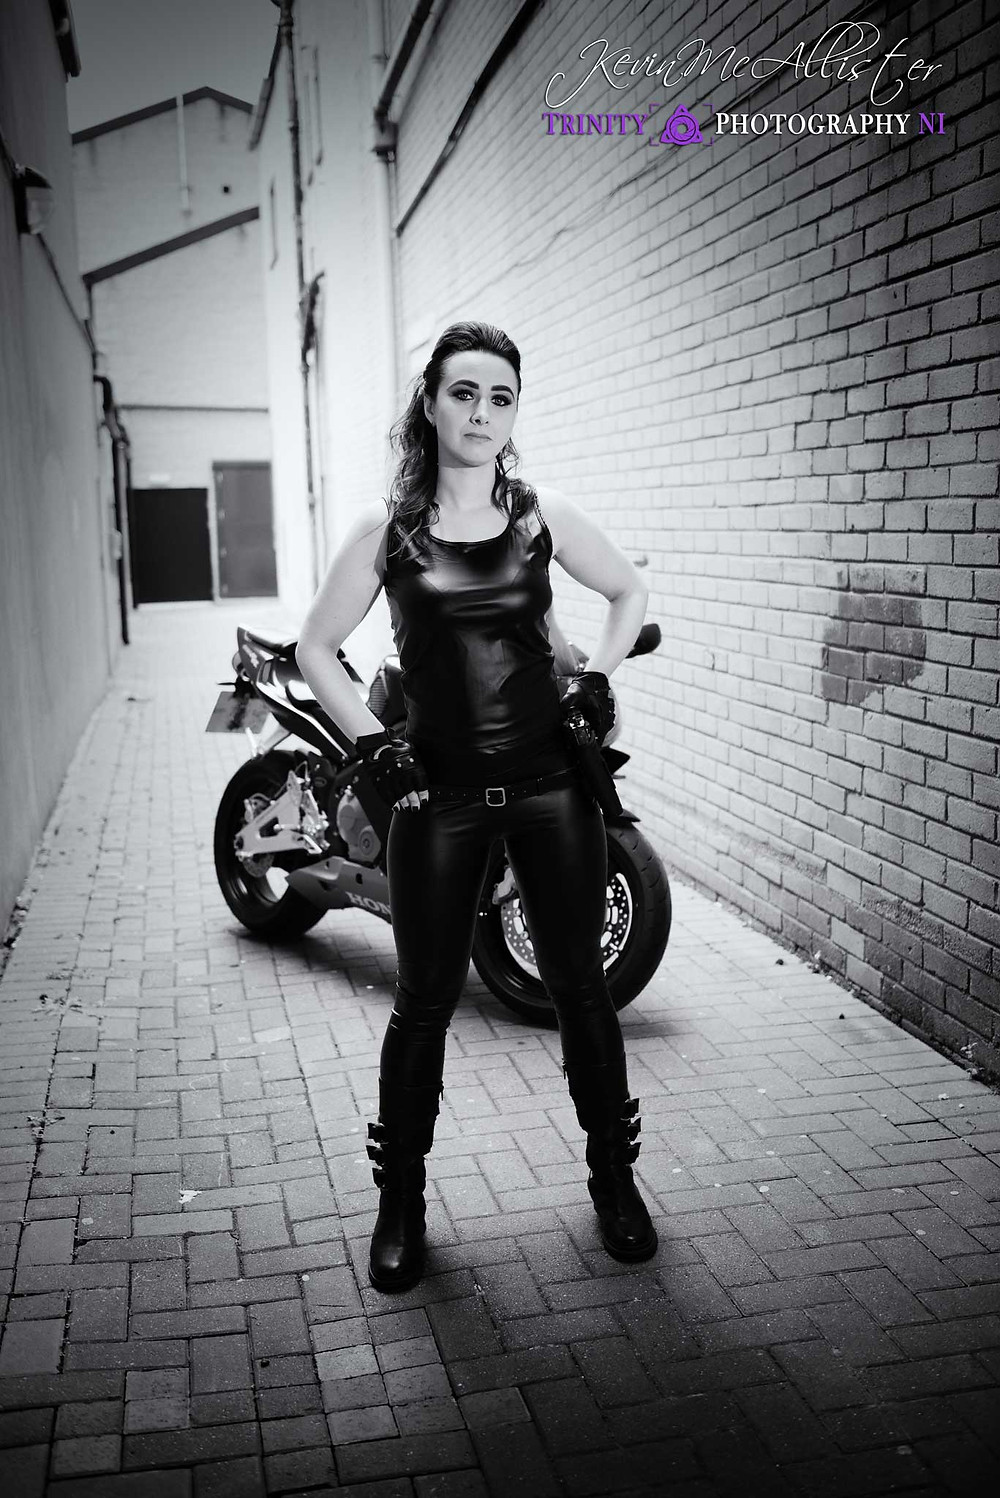 leather clad bike girl with gun and motorbike in the background.